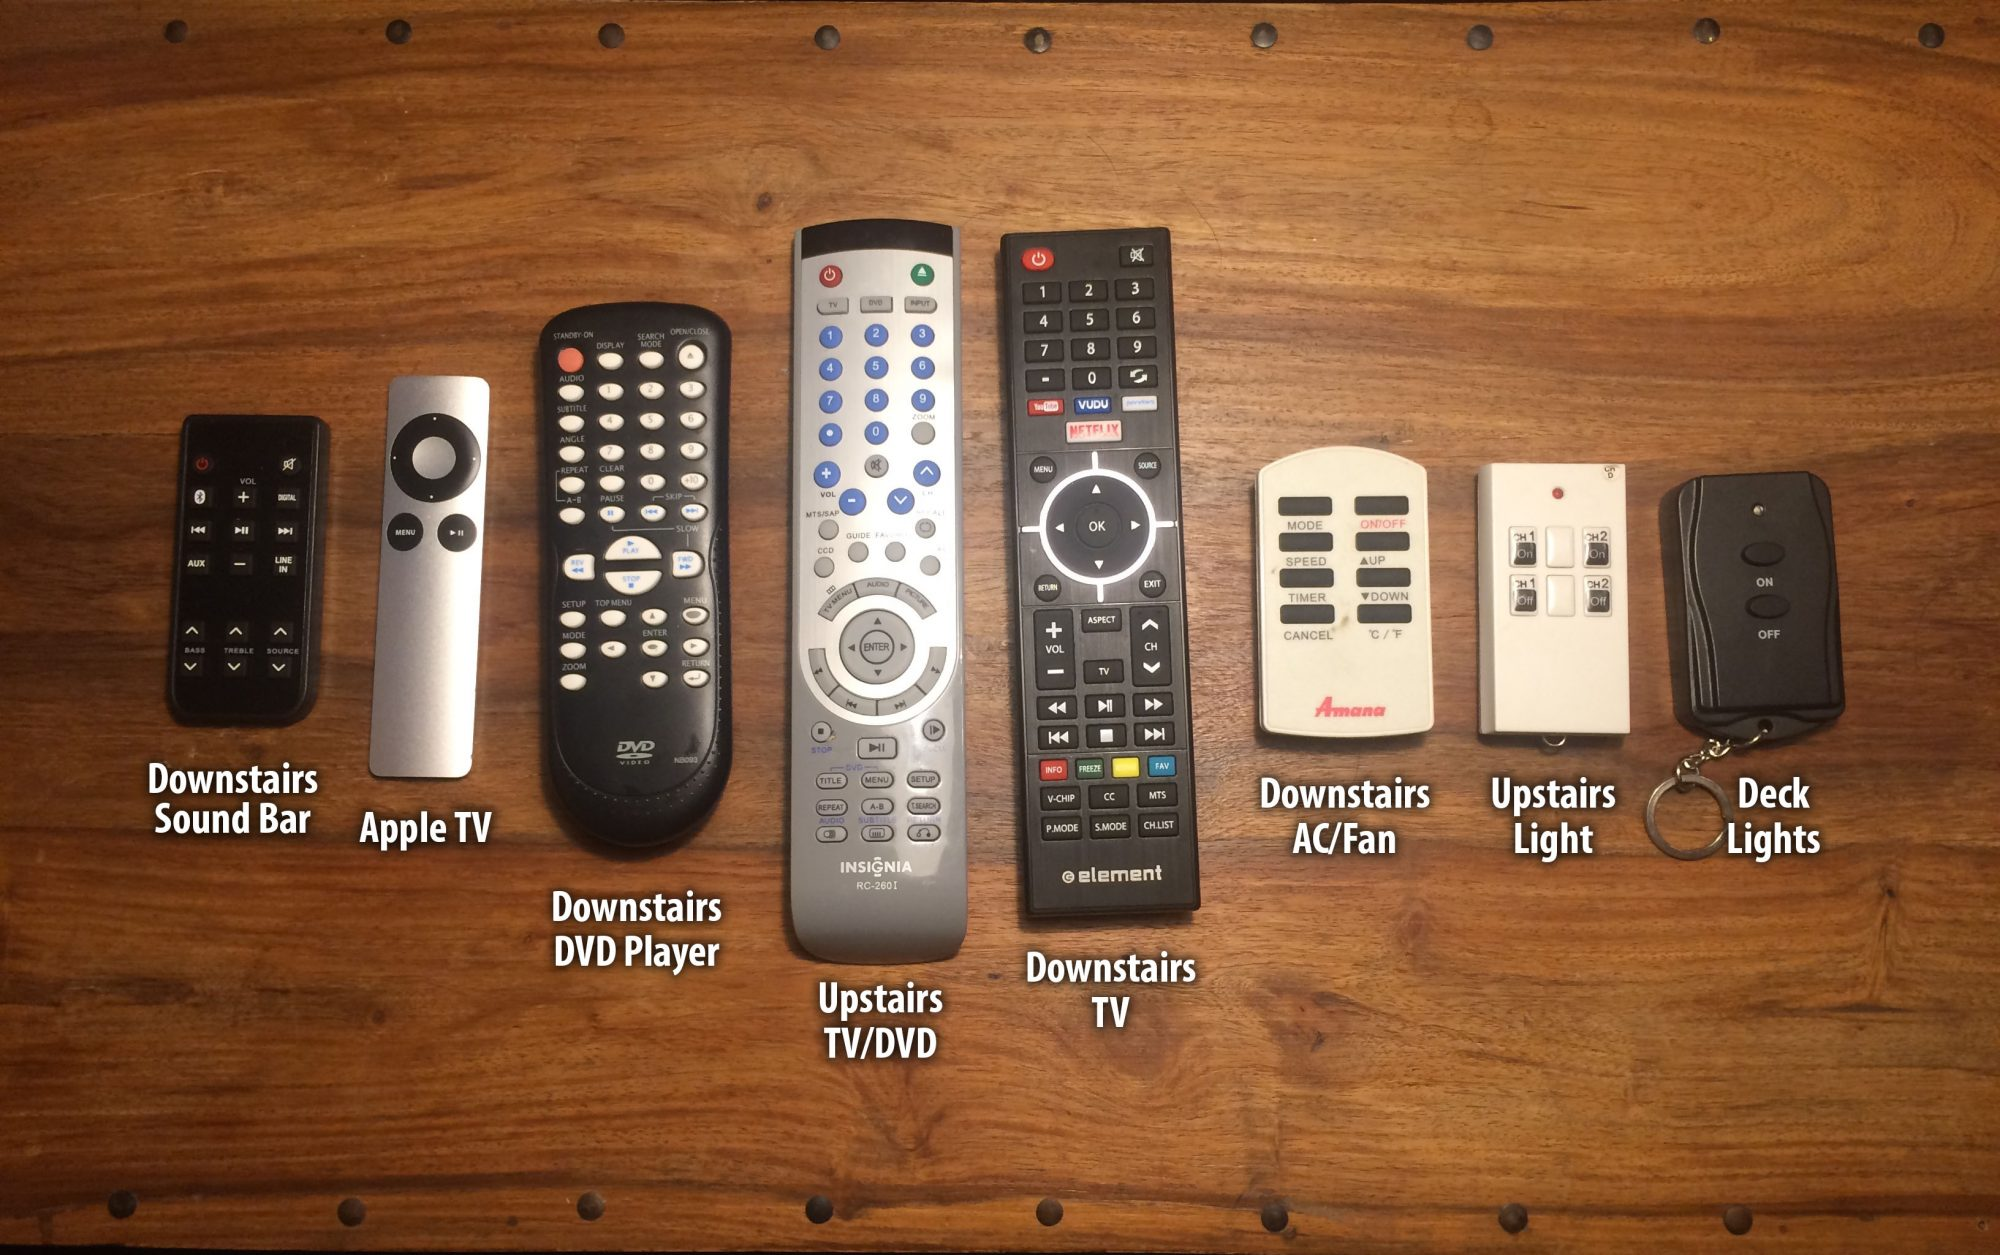 Image of remote controls